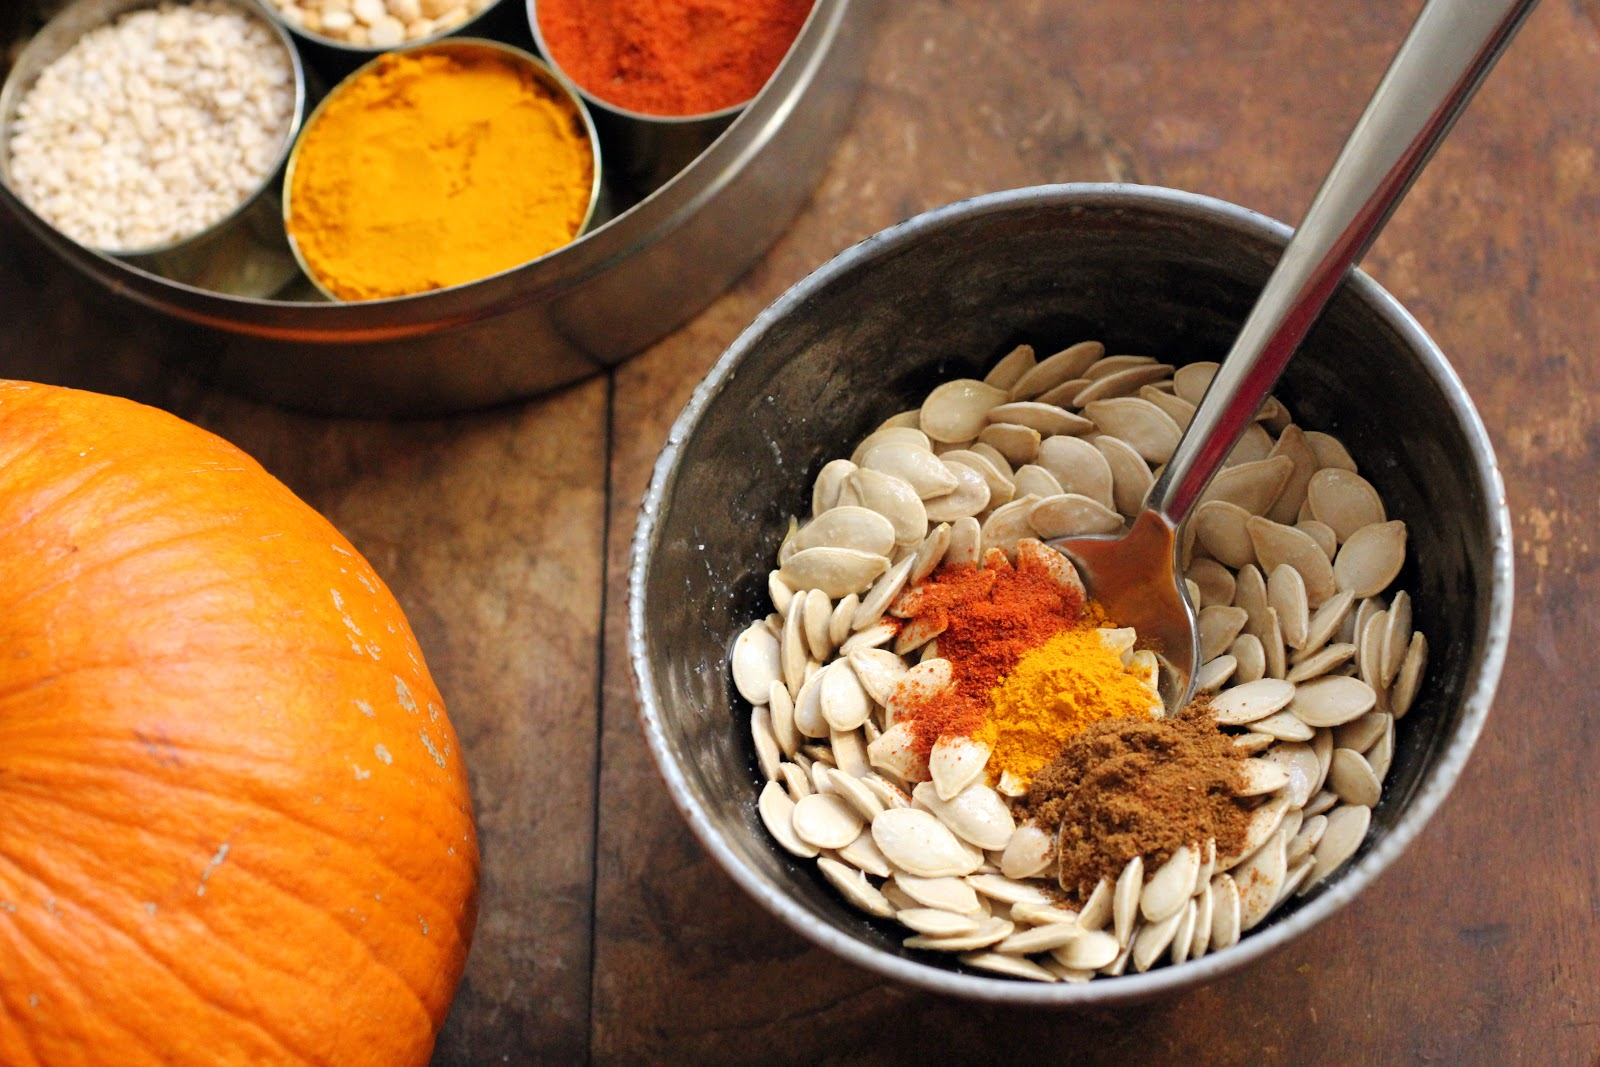 Masala roasted pumpkin seeds using my Great Aunt's garam masala recipe